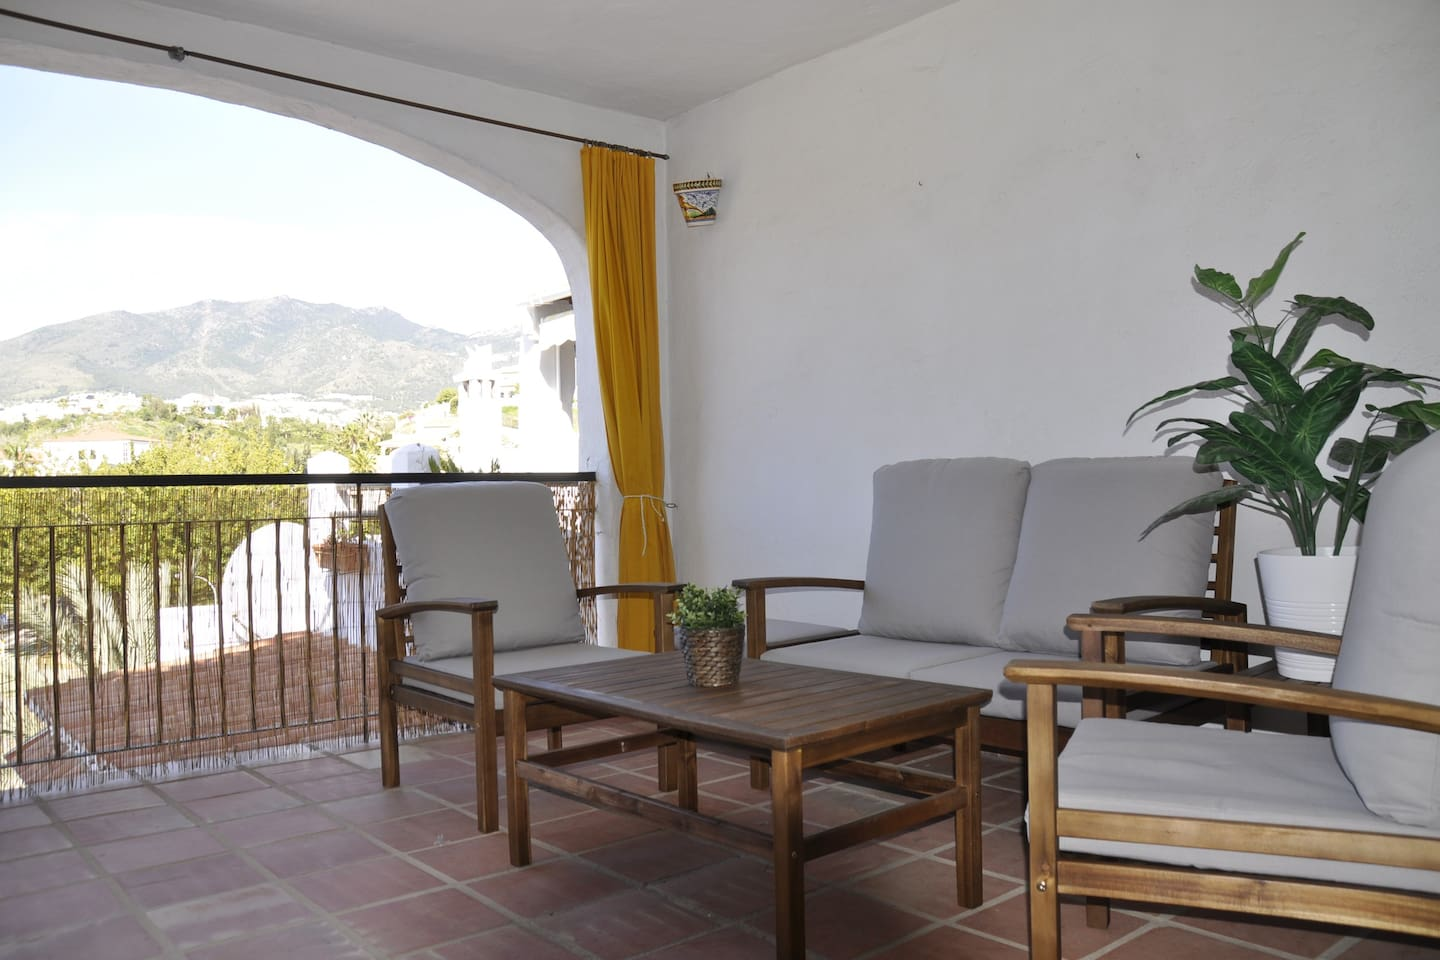 Nice apartment close to the beach (500mts) one bedroom with doble bed and one sofa bed in the living room  3 swimming pools , one of them is indoor , the other 2 with bars, near of supermarket , restaurants , pubs and public transport to go to malaga , Fuengirola etc ... and excellents views.